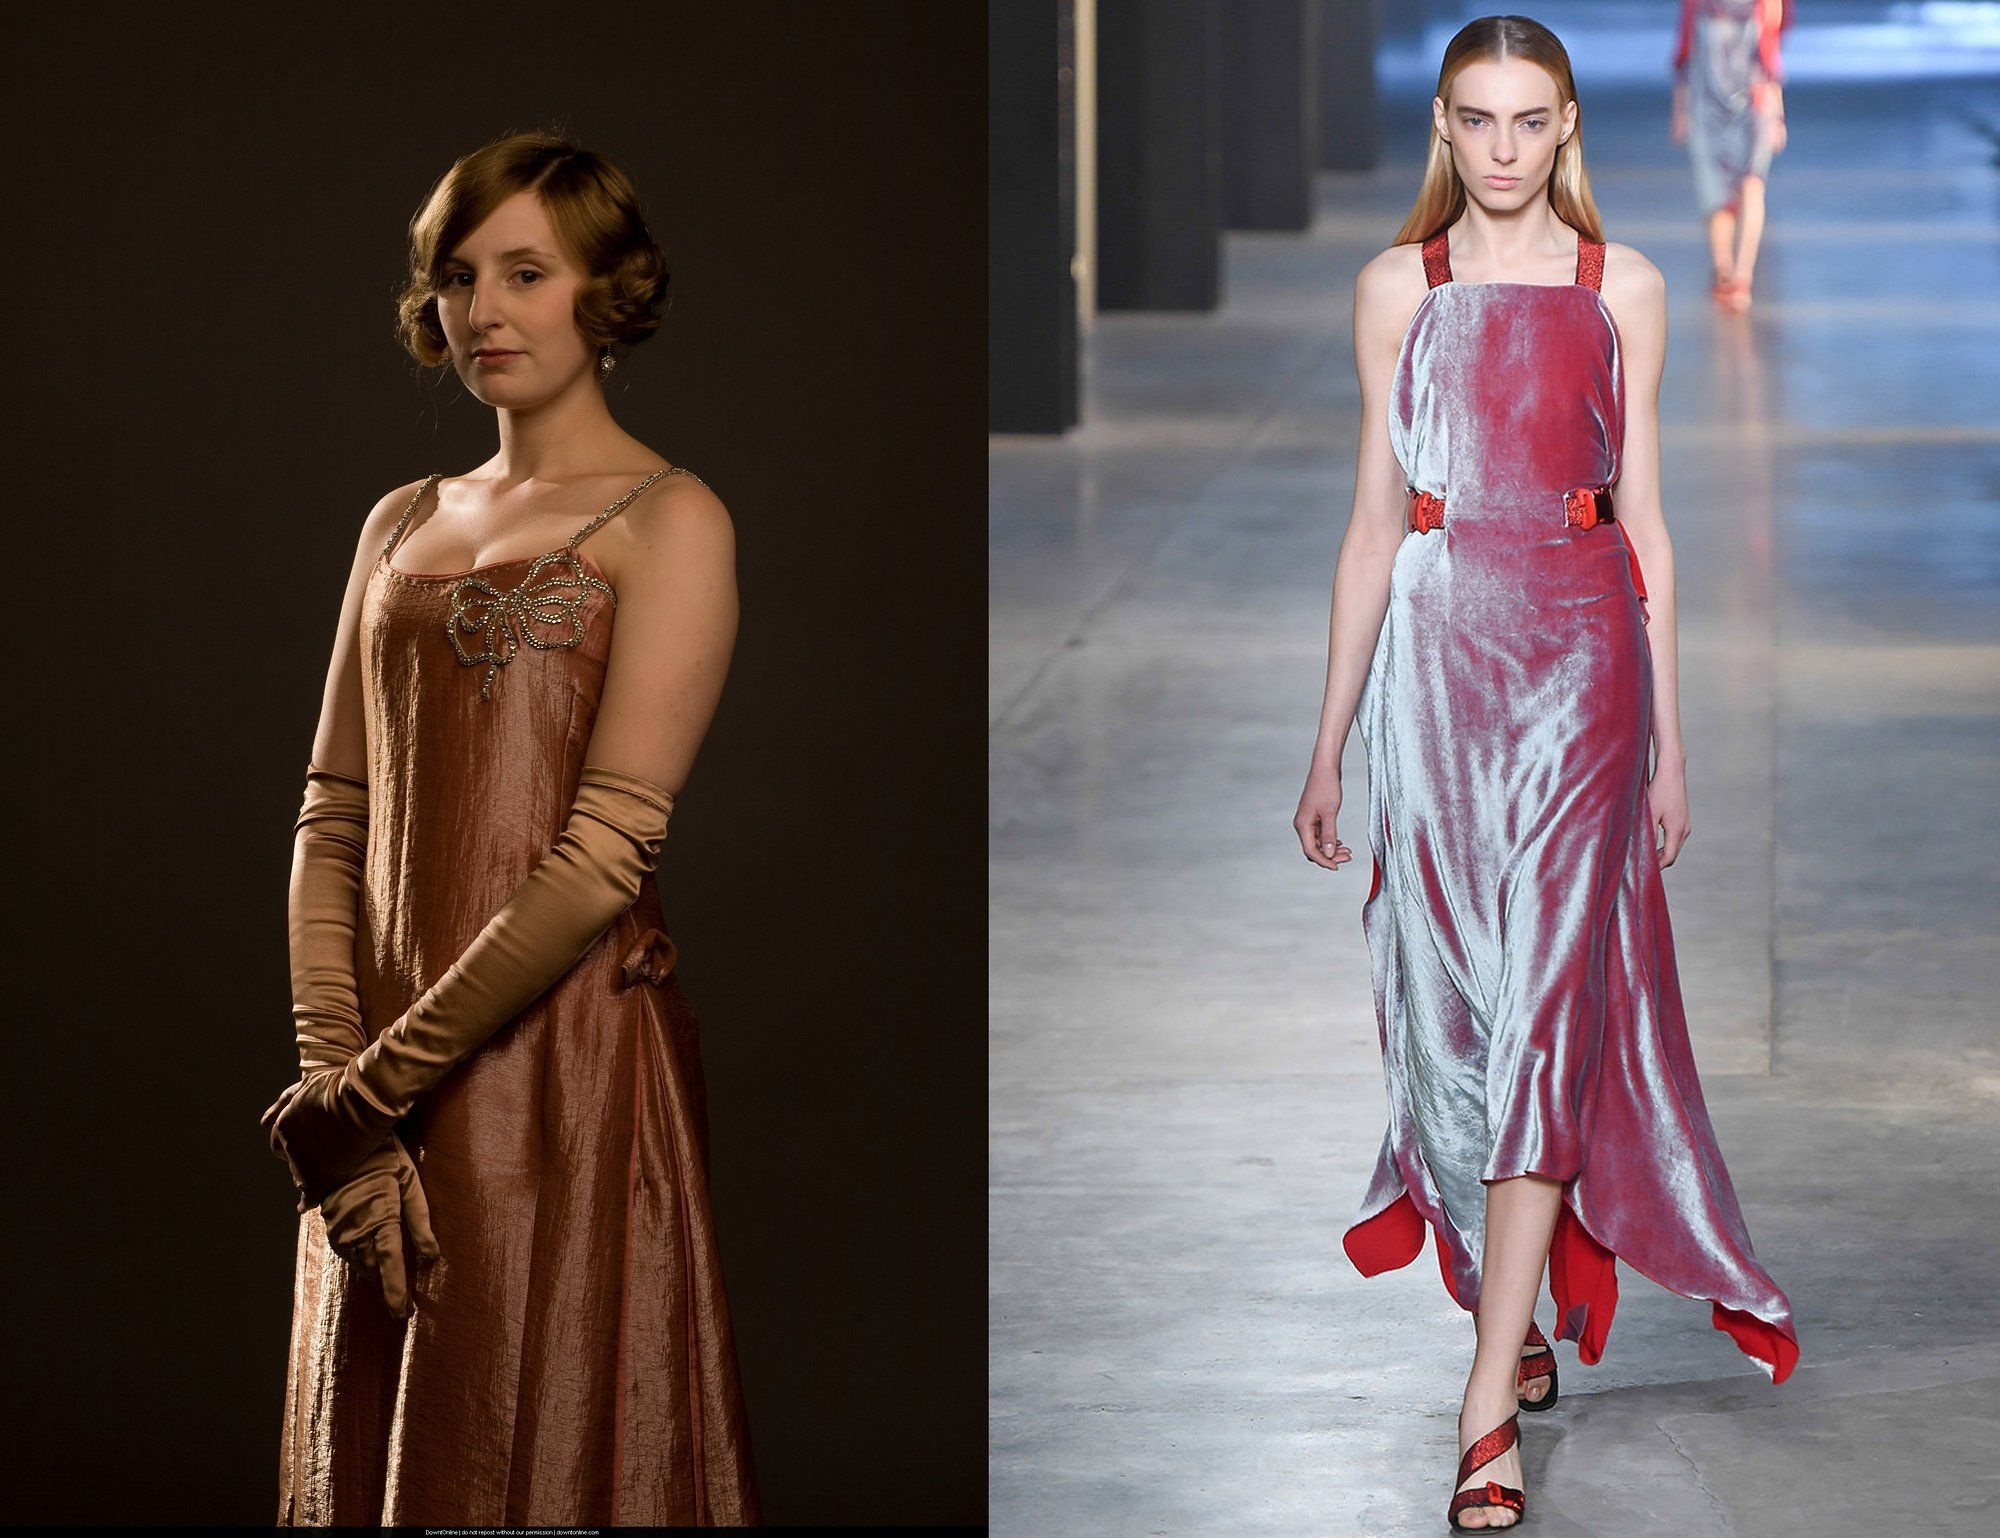 Lady Edith Crawley in Christopher Kane - Poor Edith. Unlucky in love and life, but somehow she pulls things together. In later seasons we've seen Edith evolve and experiment with flapper and Jazz Age styles, and this shimmering, velvet dress masters the era.